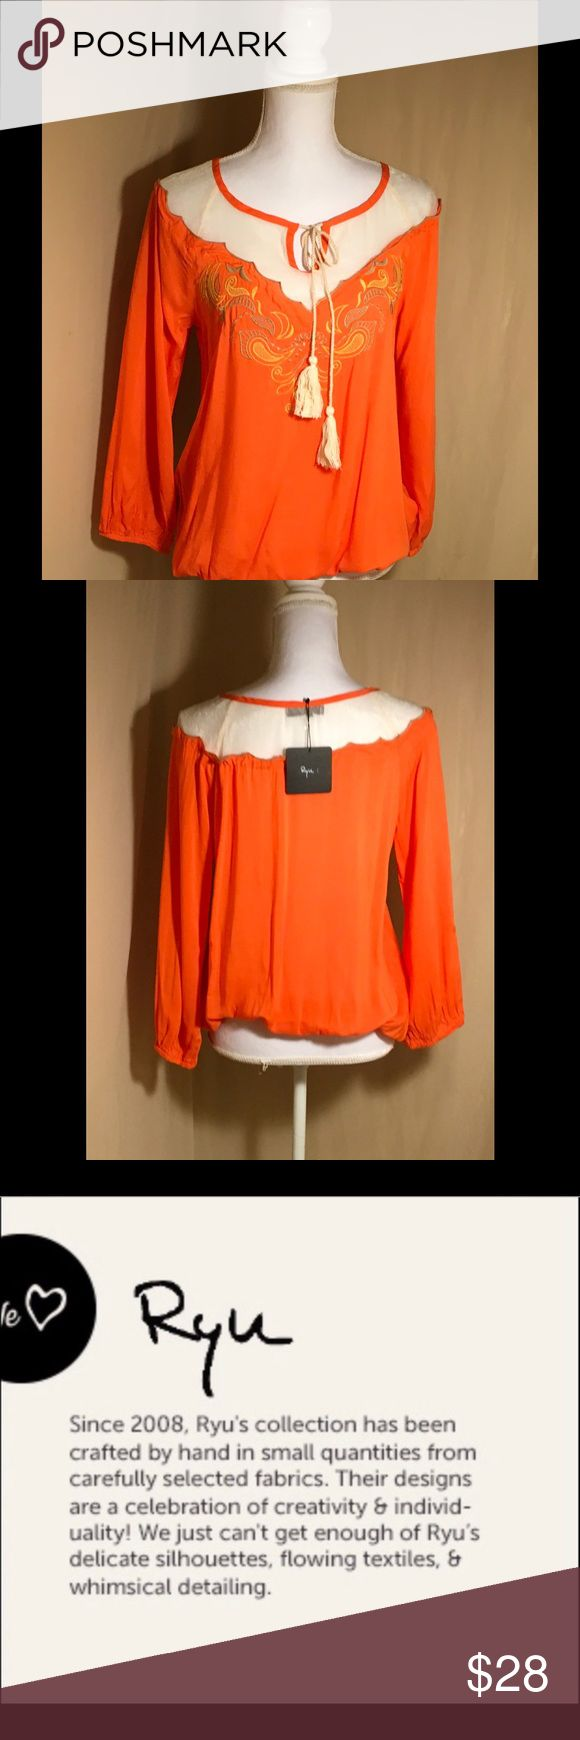 "Ryu Orange Long Sleeves Top Tassel Ties Ryu Stunning casual long sleeves great for morning or night orange with sheer cream and ties with tassel, elastic hem and wrists measure 20"" from armpit to armpit,25"" in length, new with tag. Ryu Tops Blouses"